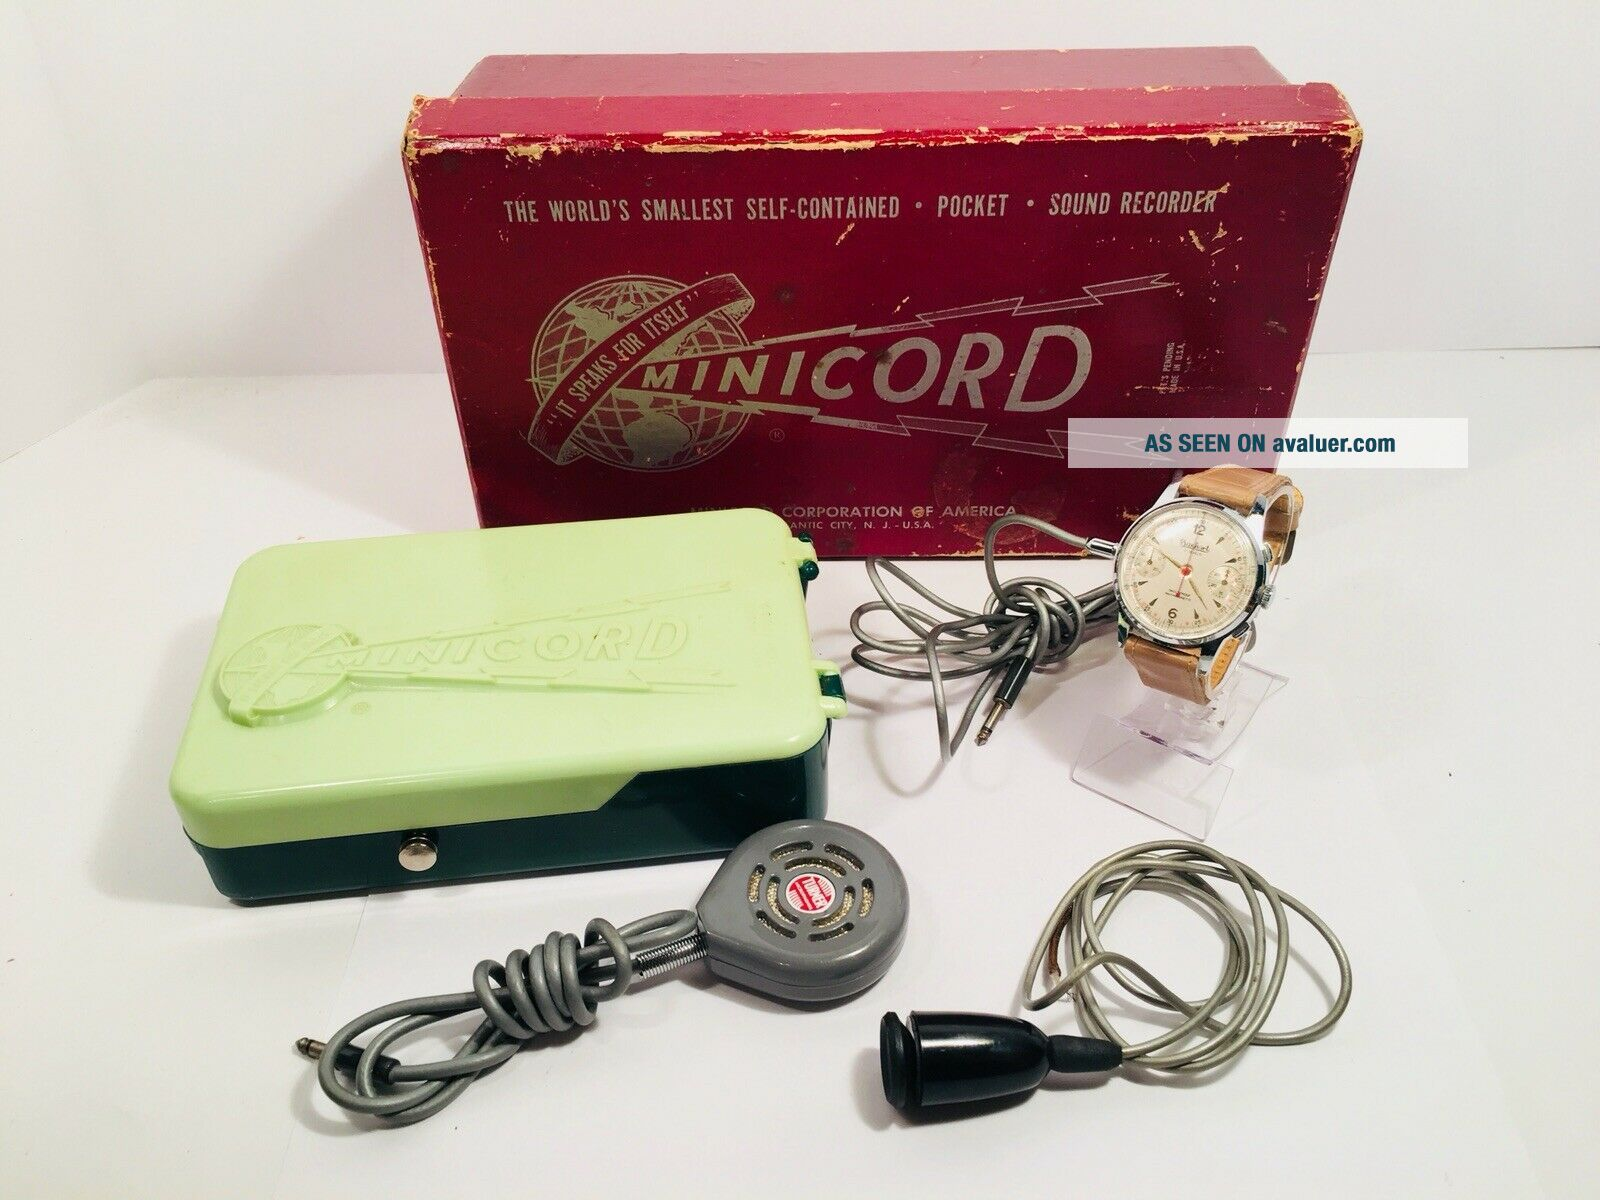 Vintage Minicord Wire Recorder With Hanhart Chrono Microphone Watch Spy Gear CIA